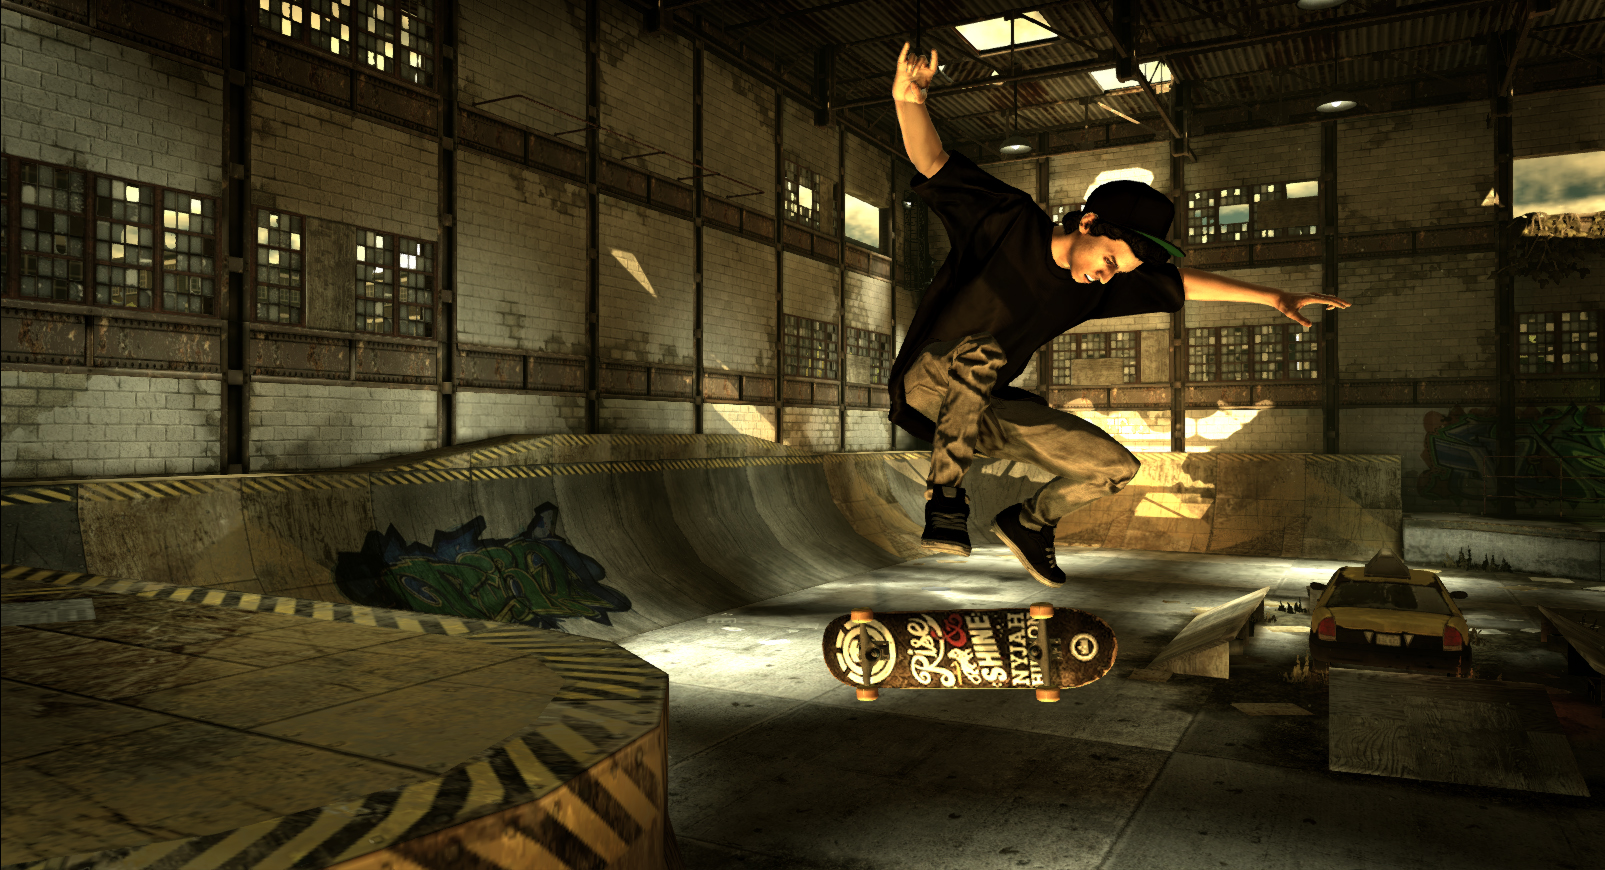 Tony Hawk's Pro Skater HD to be removed from Steam next week